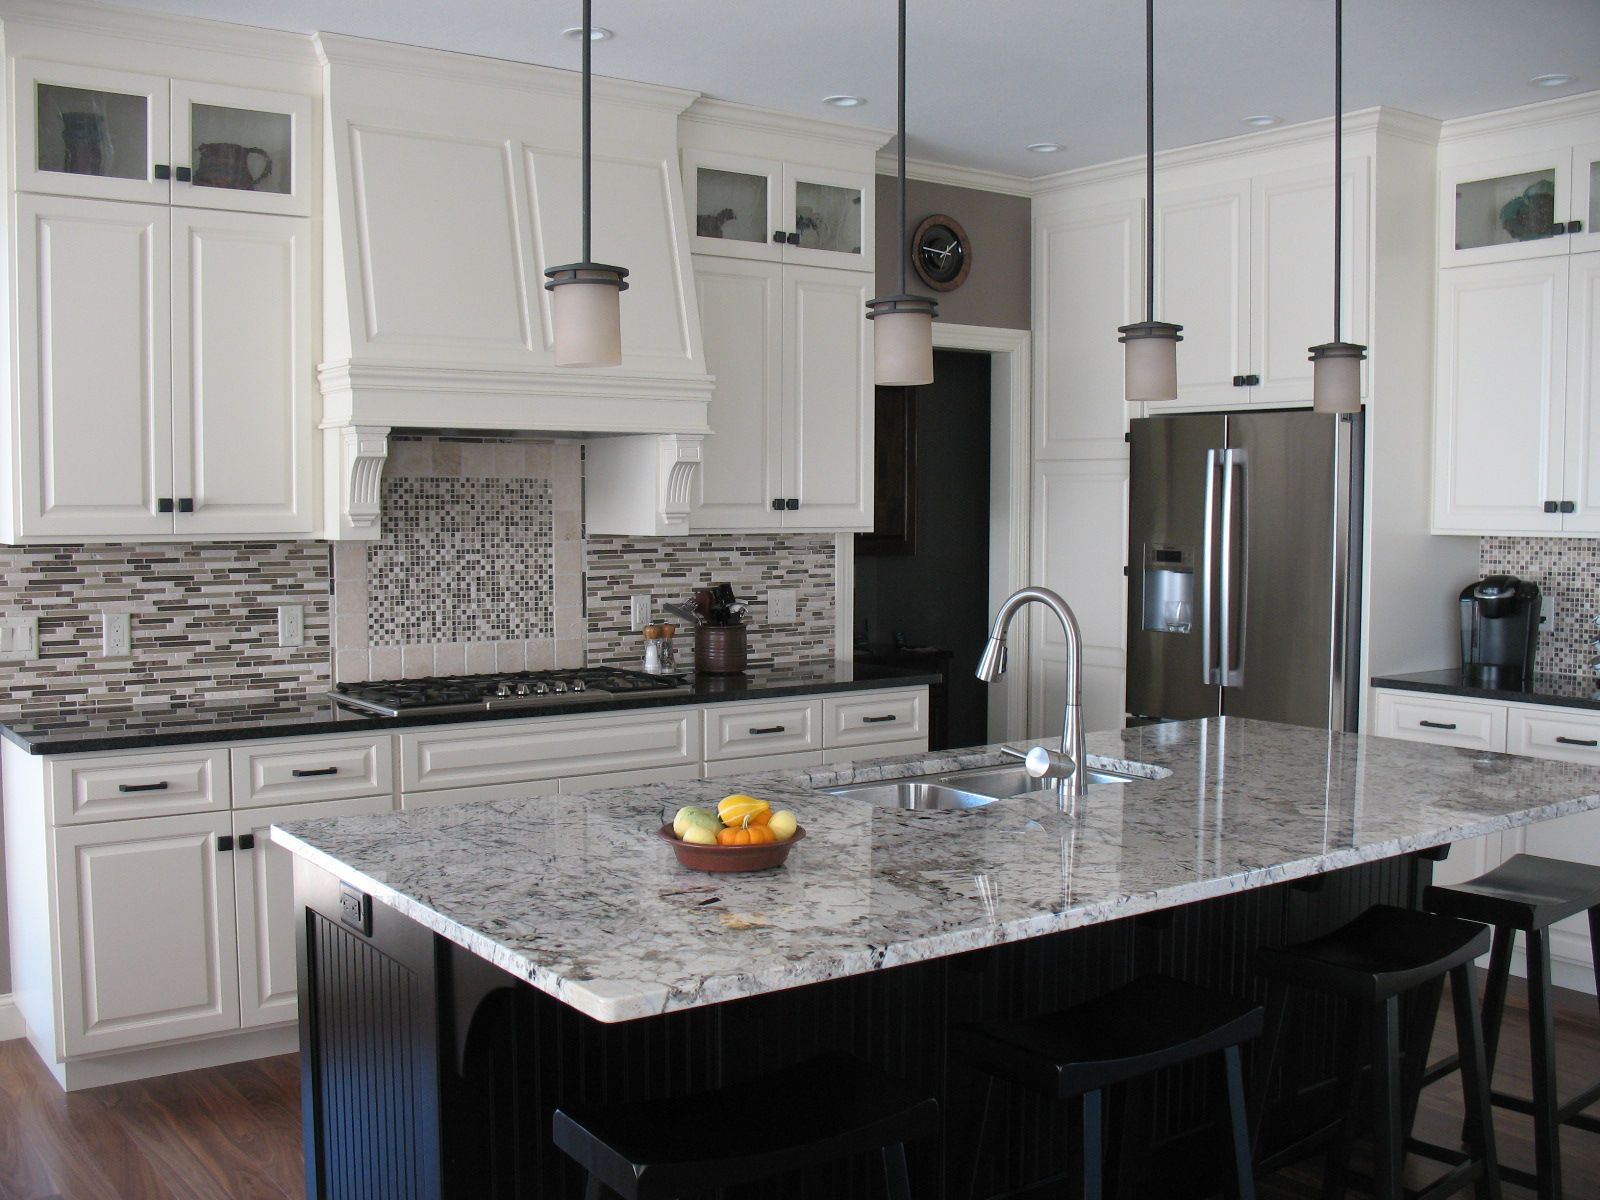 This beautiful contemporary kitchen utilizes Alaskan White